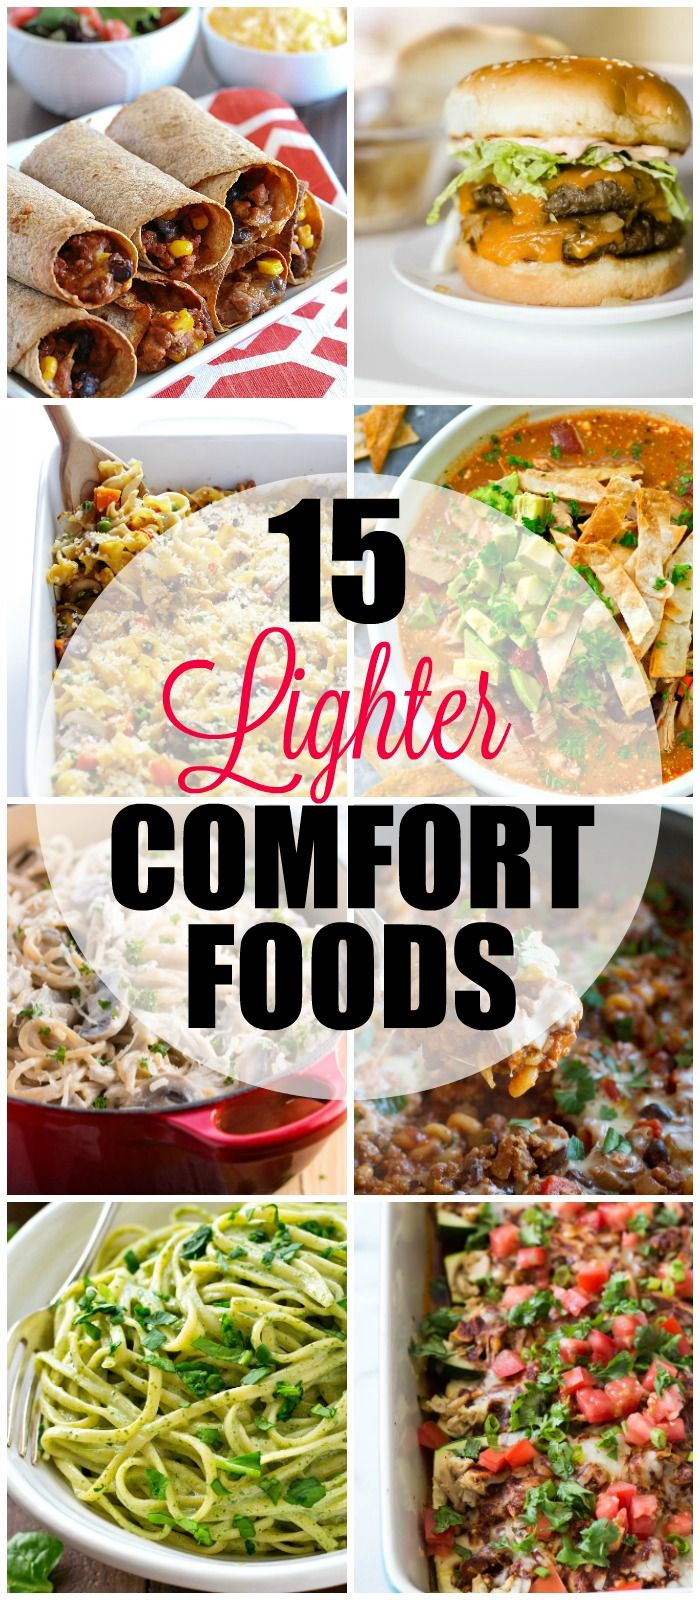 Check out these 15 light healthy comfort food recipes enjoy check out these 15 light healthy comfort food recipes enjoy comfort foods guilt free with these lighter takes on classic recipes pinterest forumfinder Gallery